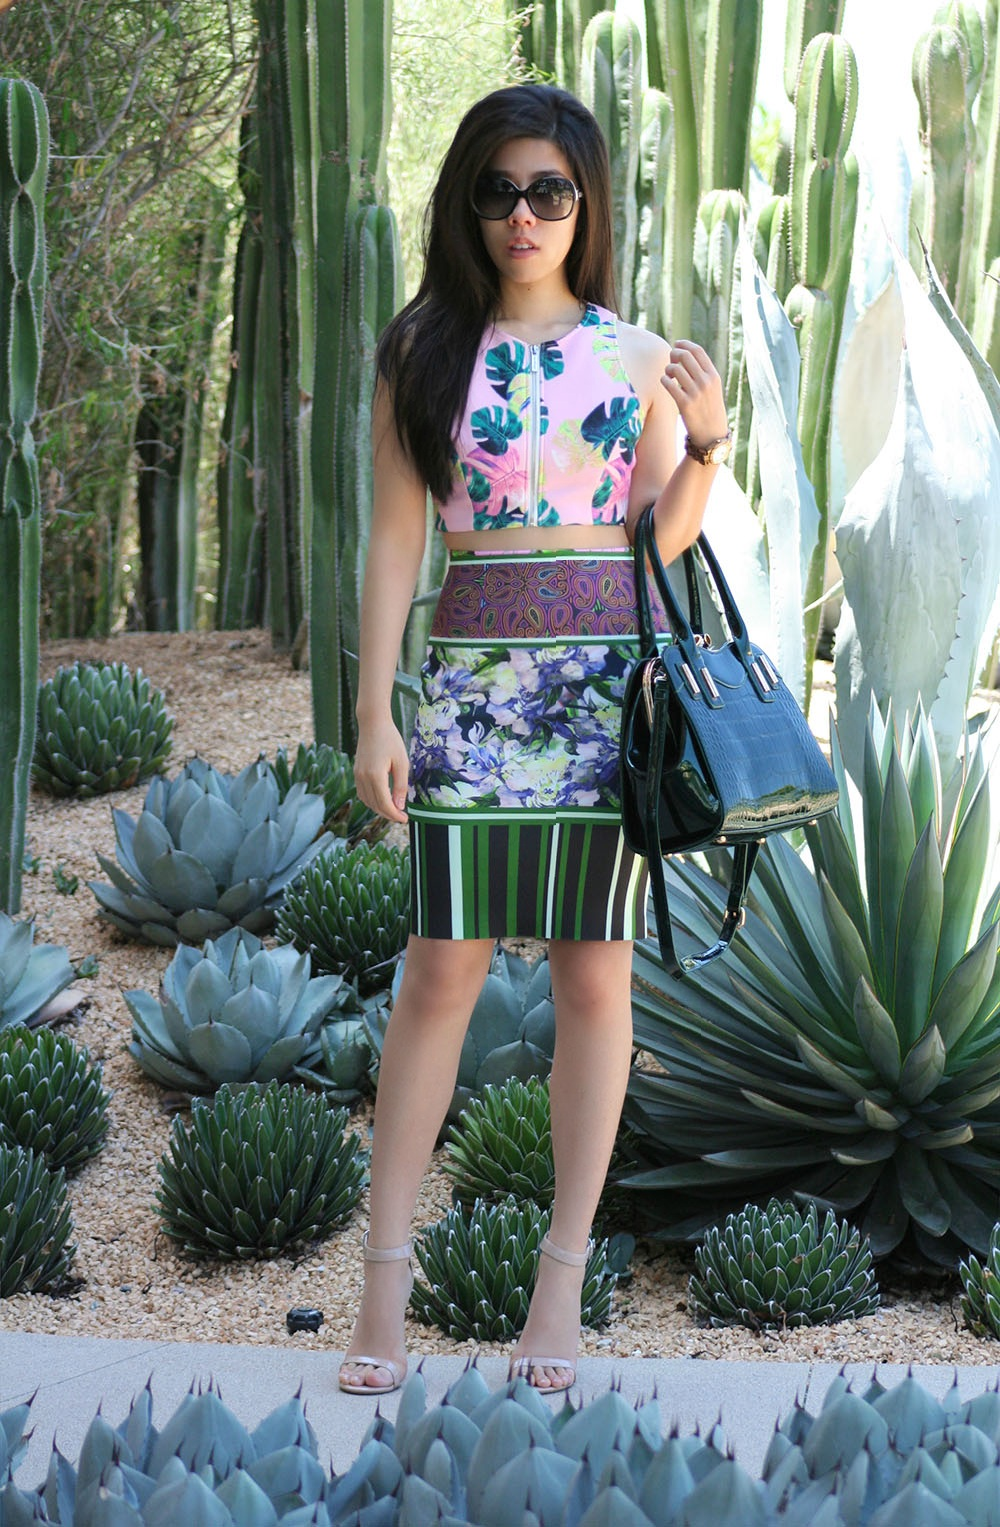 Adrienne Nguyen_Invictus_Pink and Green Outfit_BodyCon Outfits for Work_What to Wear to Work In the Summer